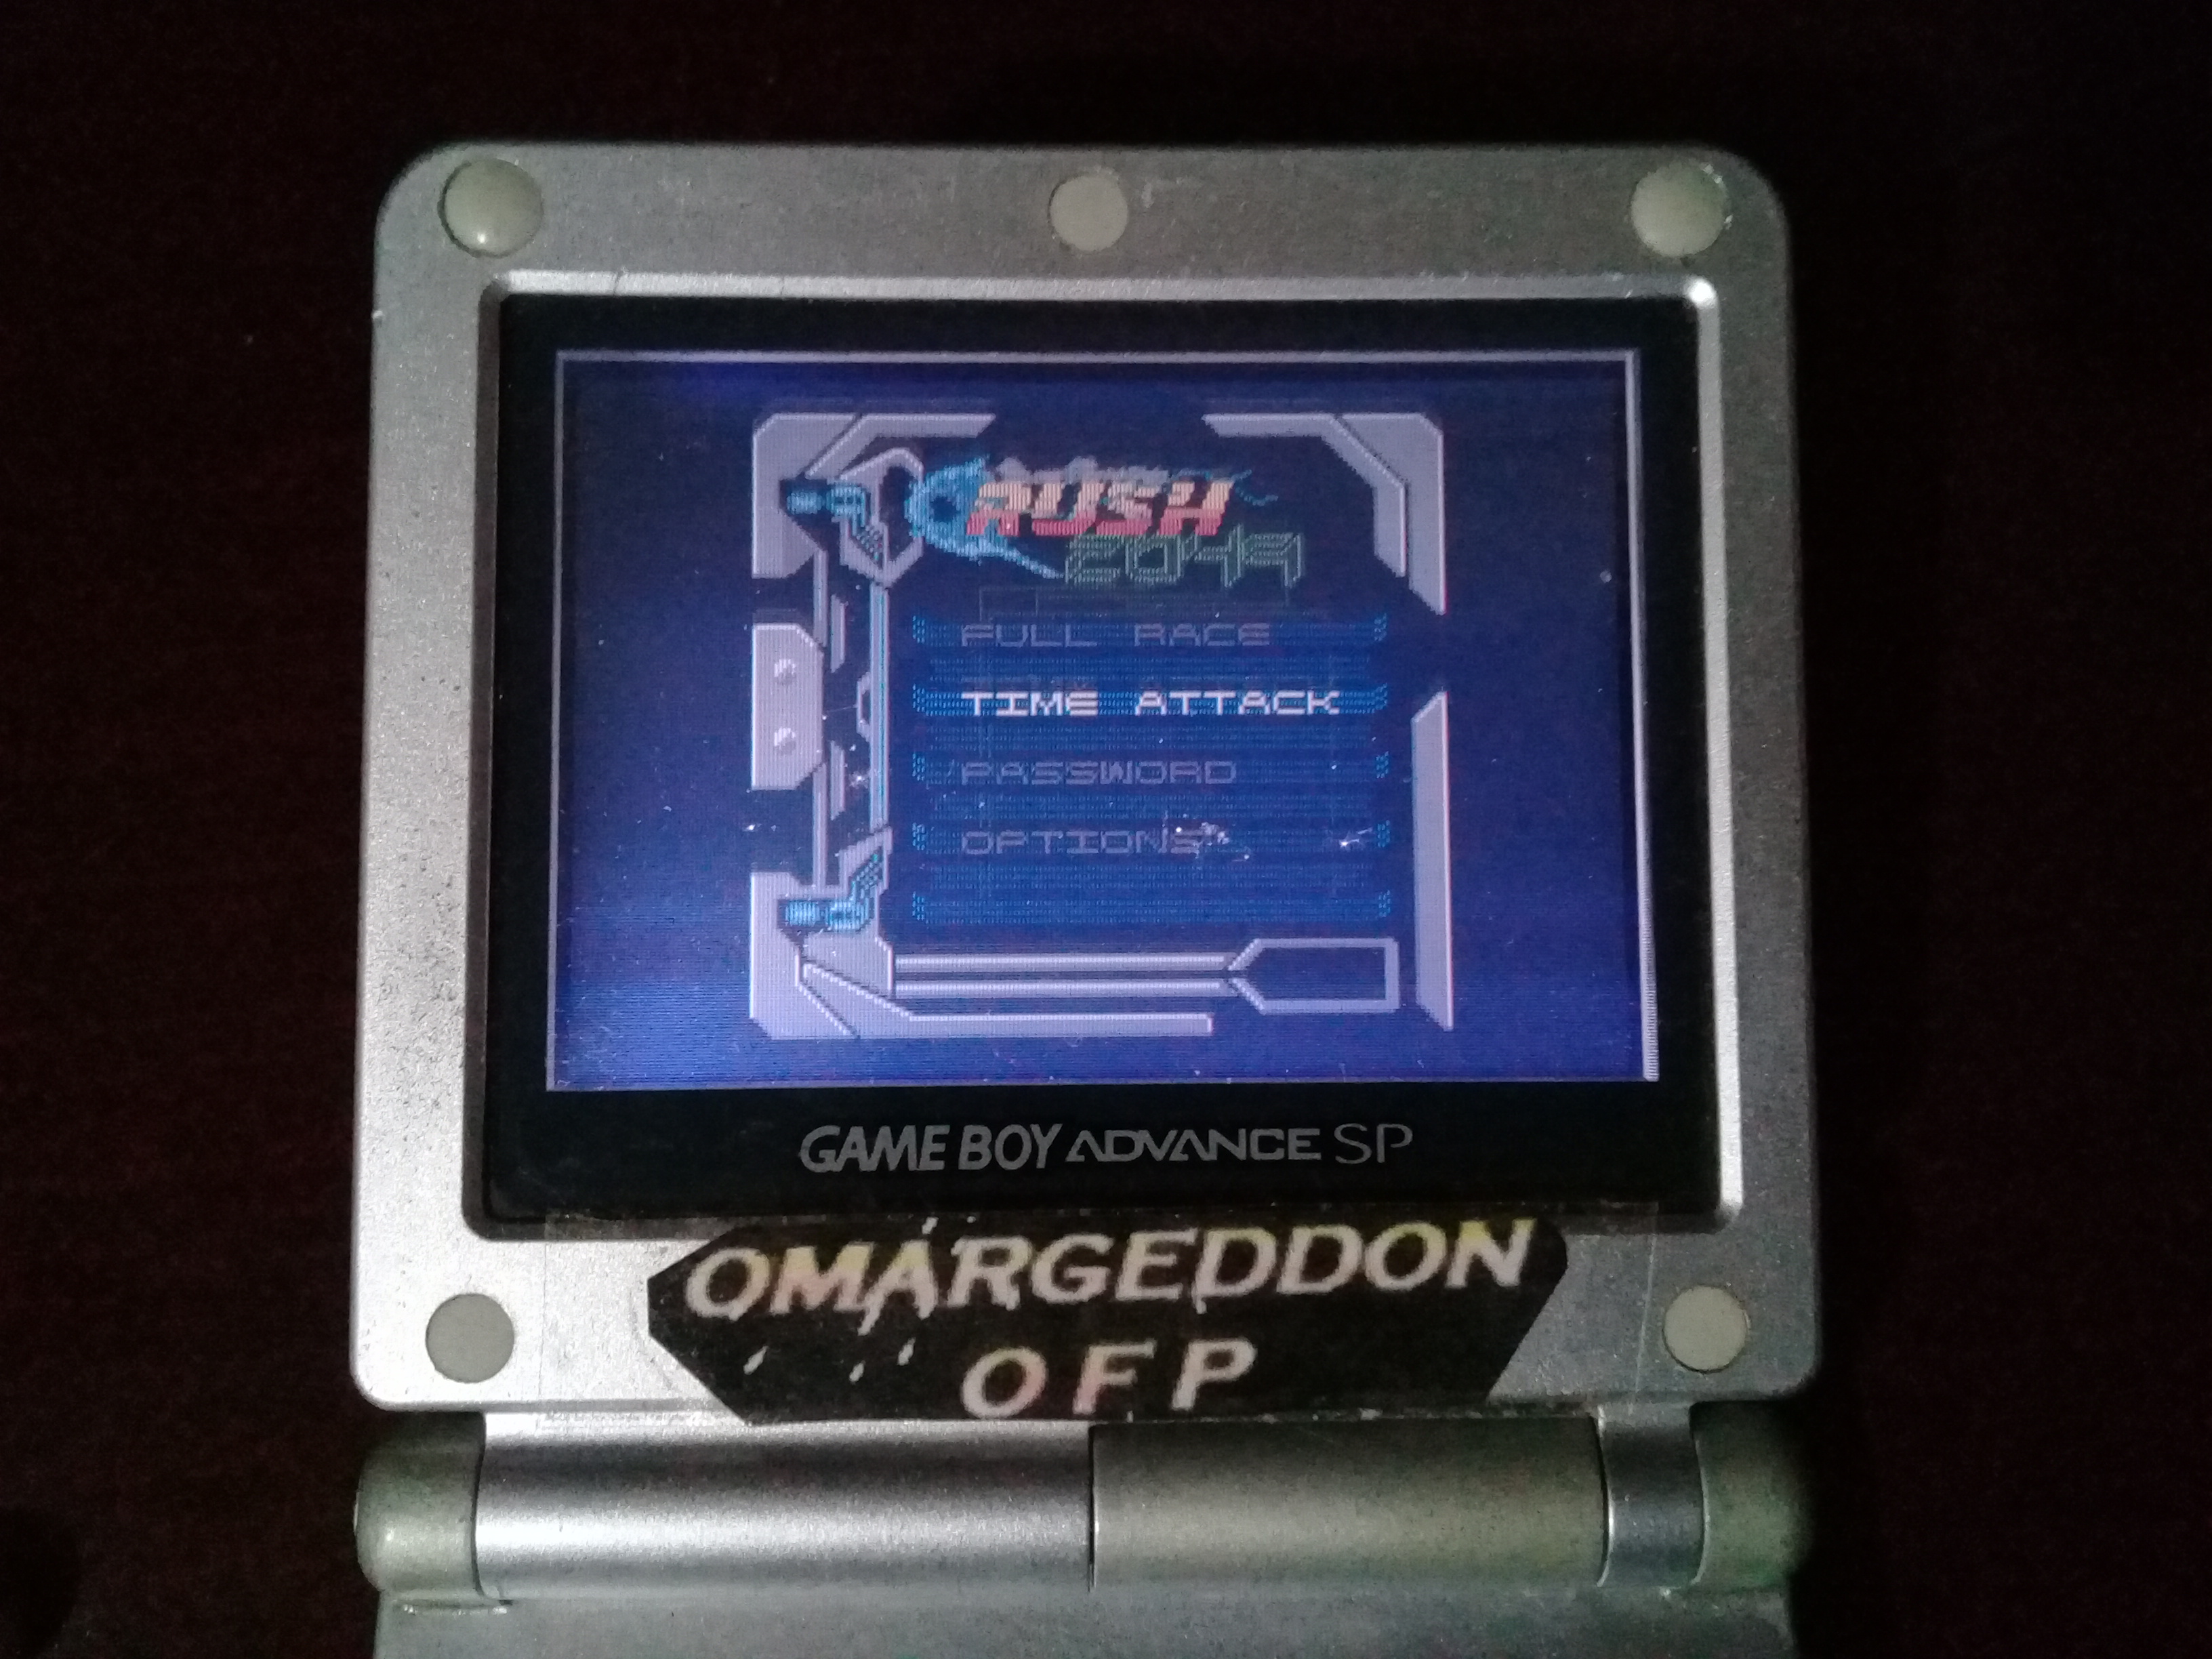 omargeddon: San Francisco Rush 2049: Time Trial [Track 2] (Game Boy Color) 0:01:07.3 points on 2019-03-01 09:54:04